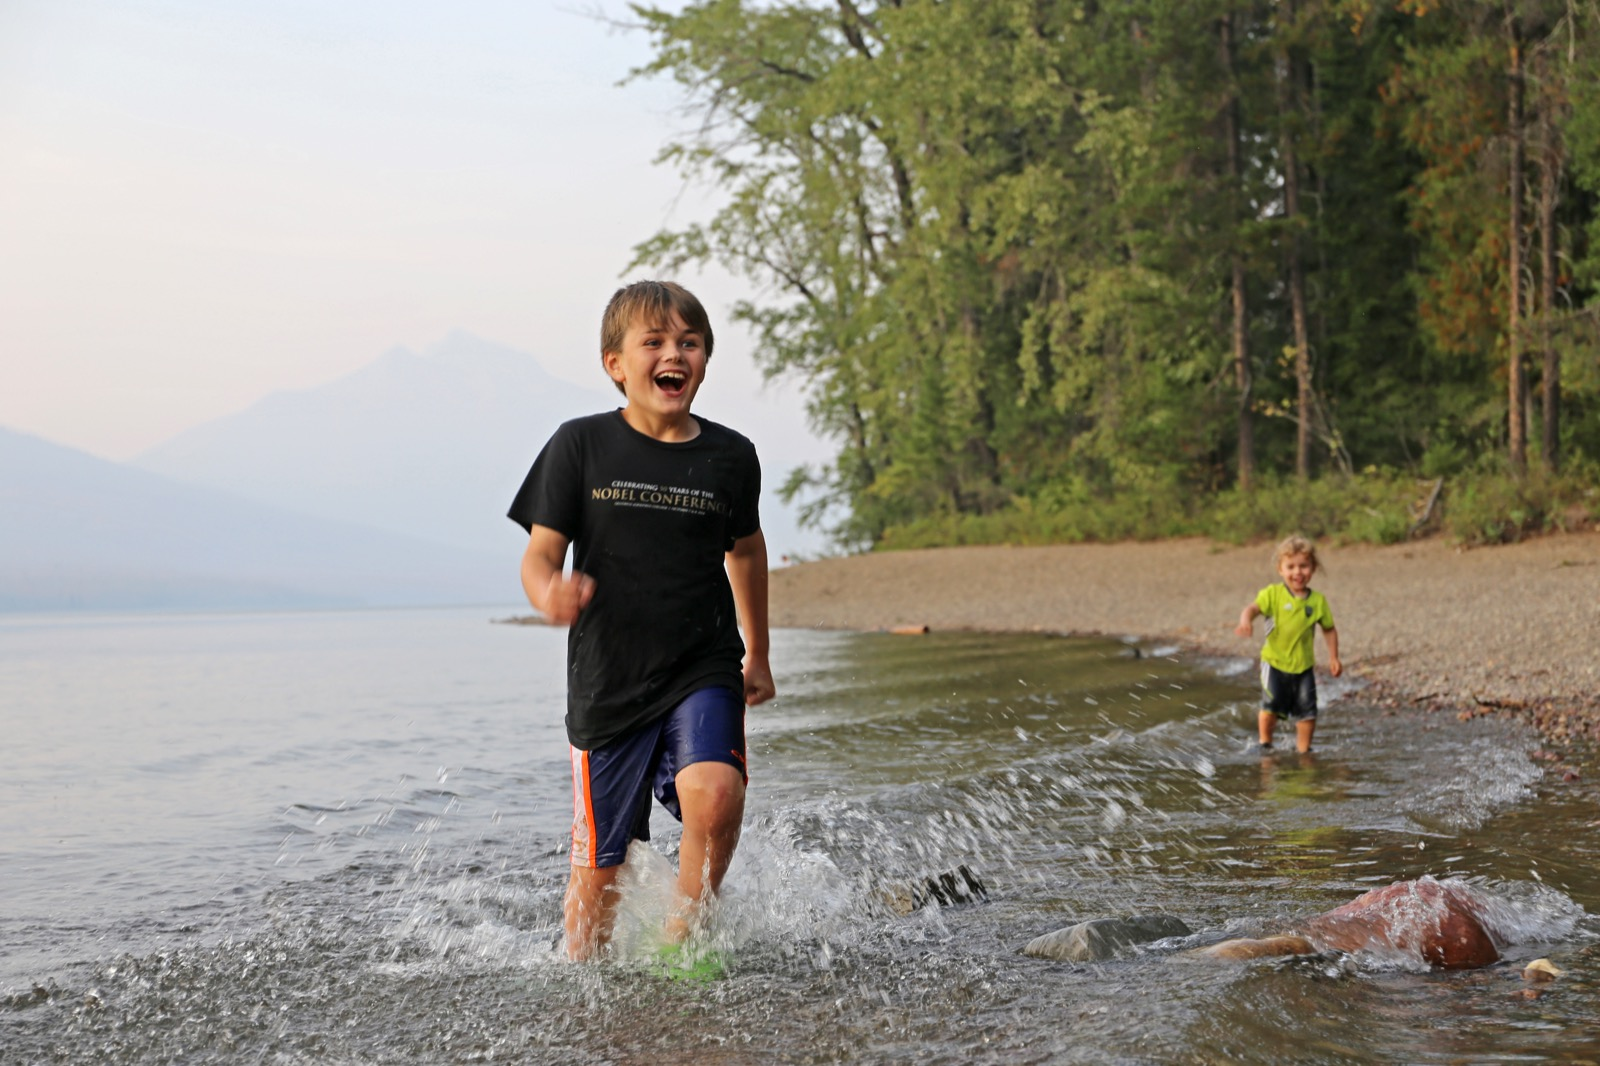 Two young kids splash in the shallow water along shores of St. Mary Lake in Glacier National Park.